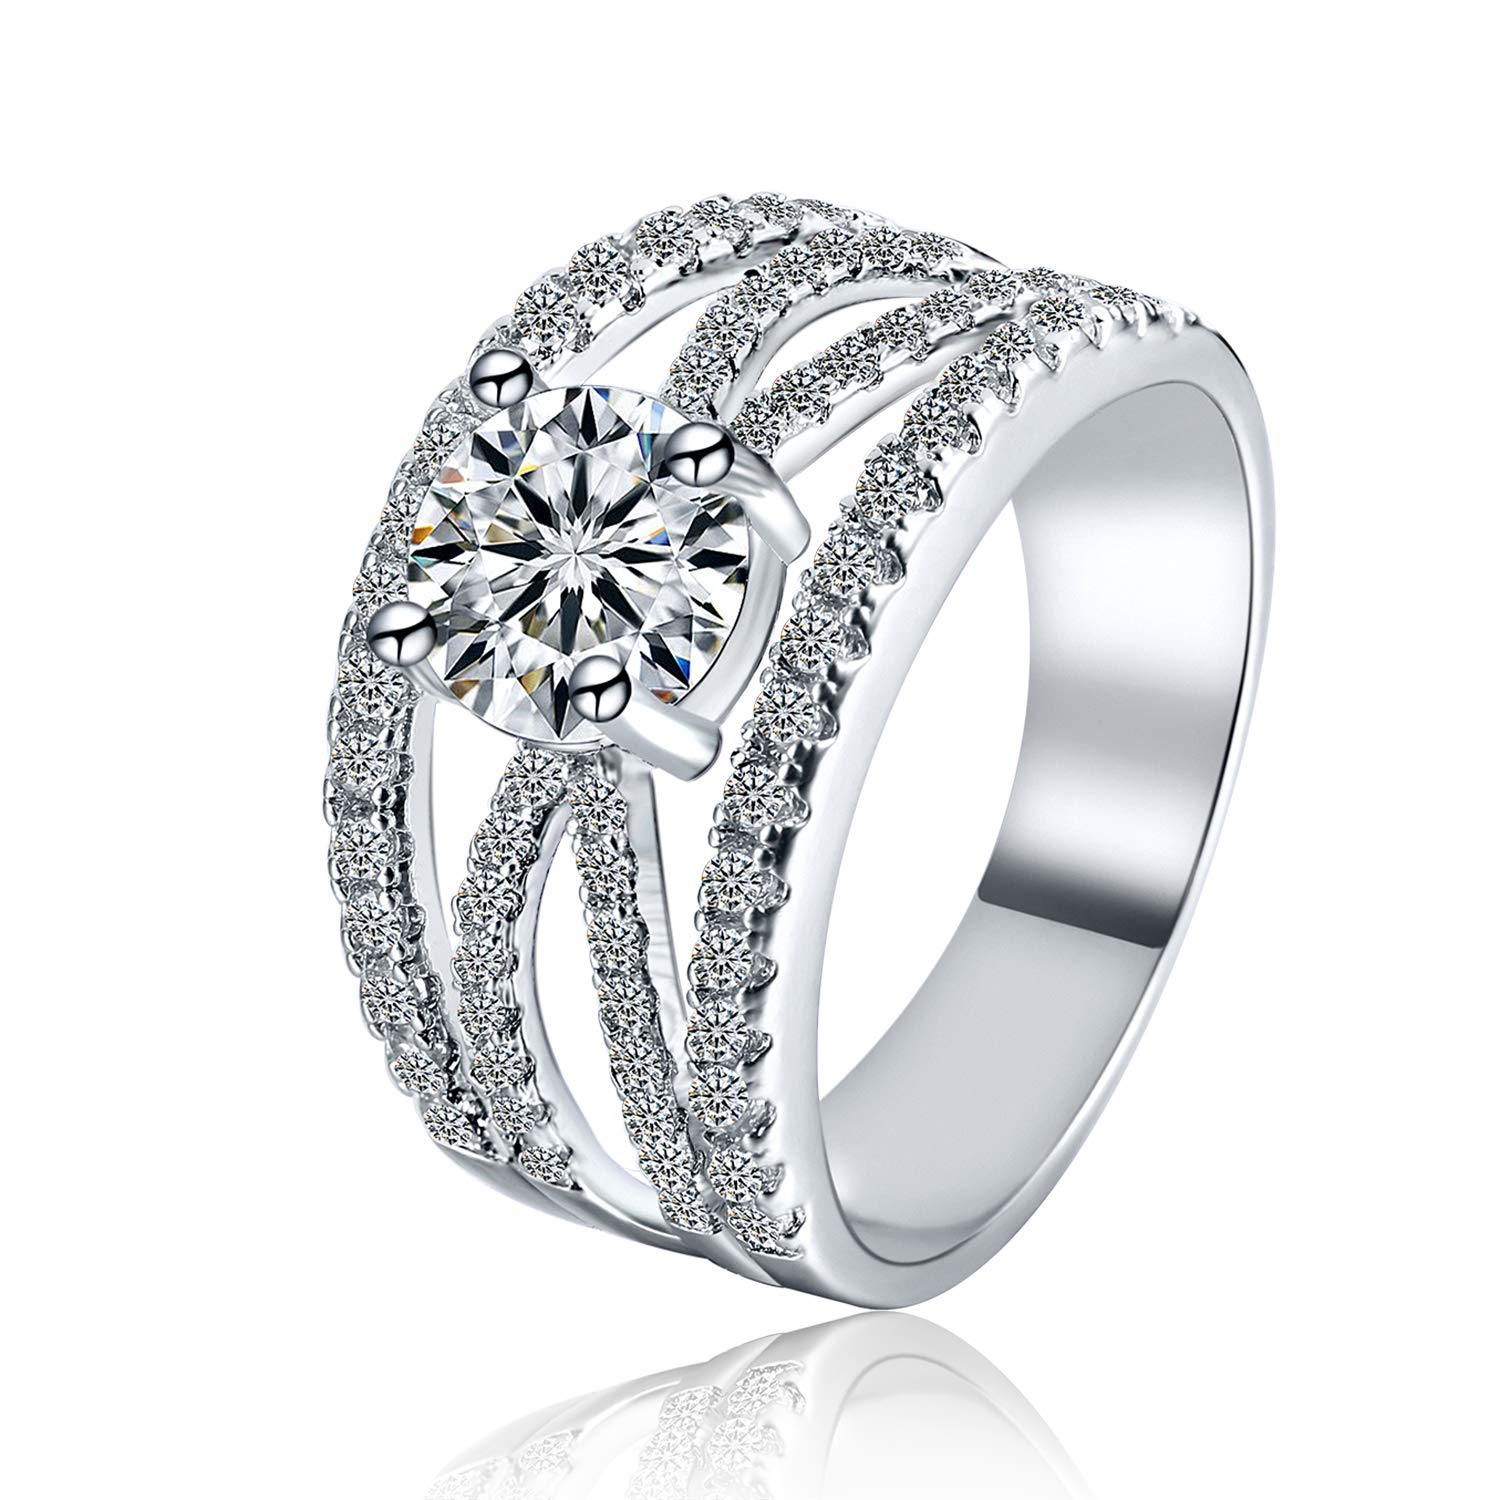 Women's Cubic Zirconia Rhodium Plated Criss Cross Statement Cocktail Ring Size 6-9 Shengtai ST587Z